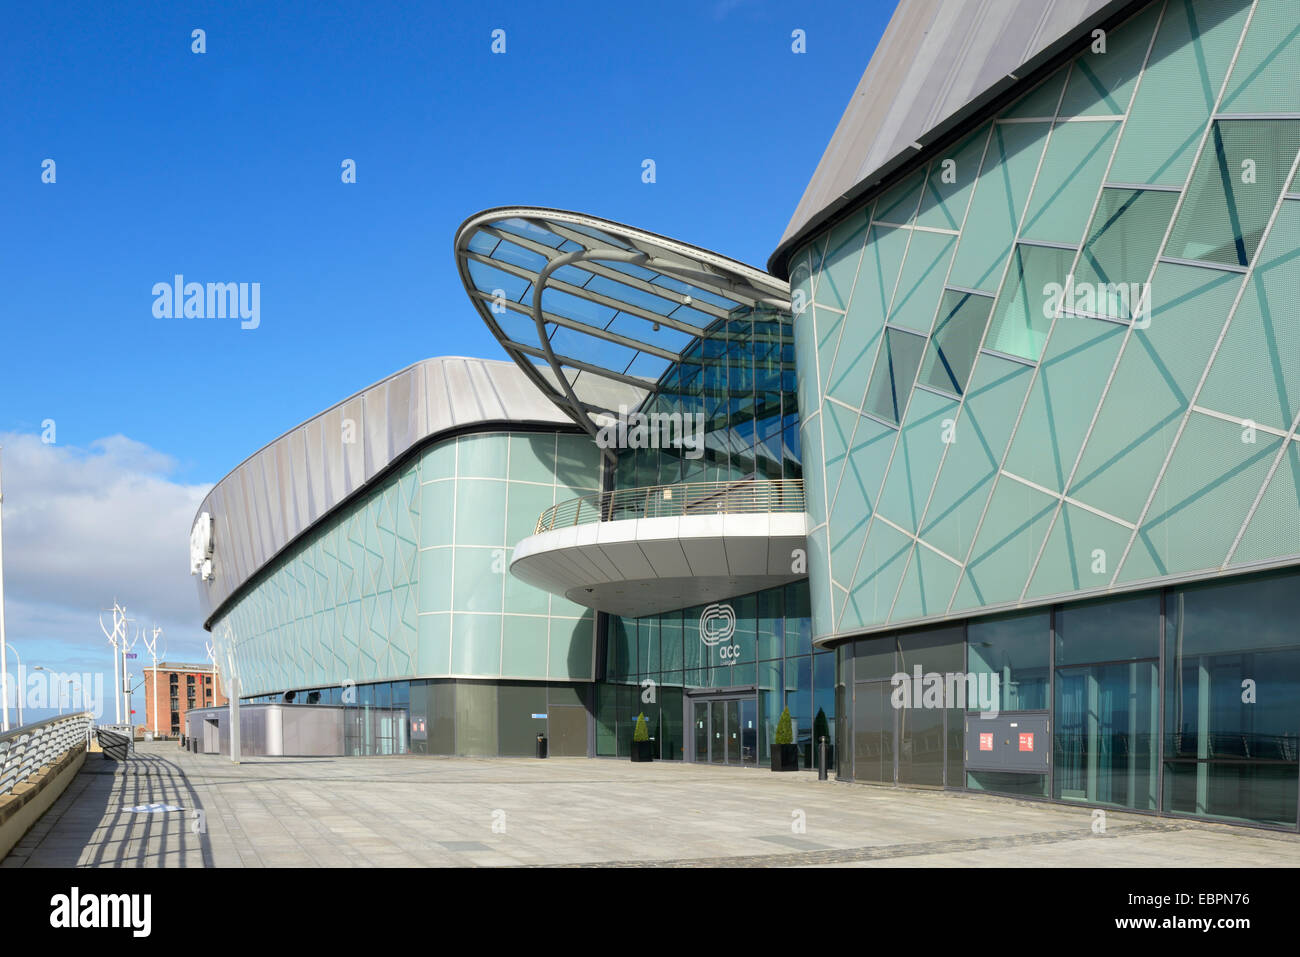 Echo Arena and BT Convention Centre, ACC Liverpool, Kings Dock, Liverpool, Merseyside, England, United Kingdom, - Stock Image